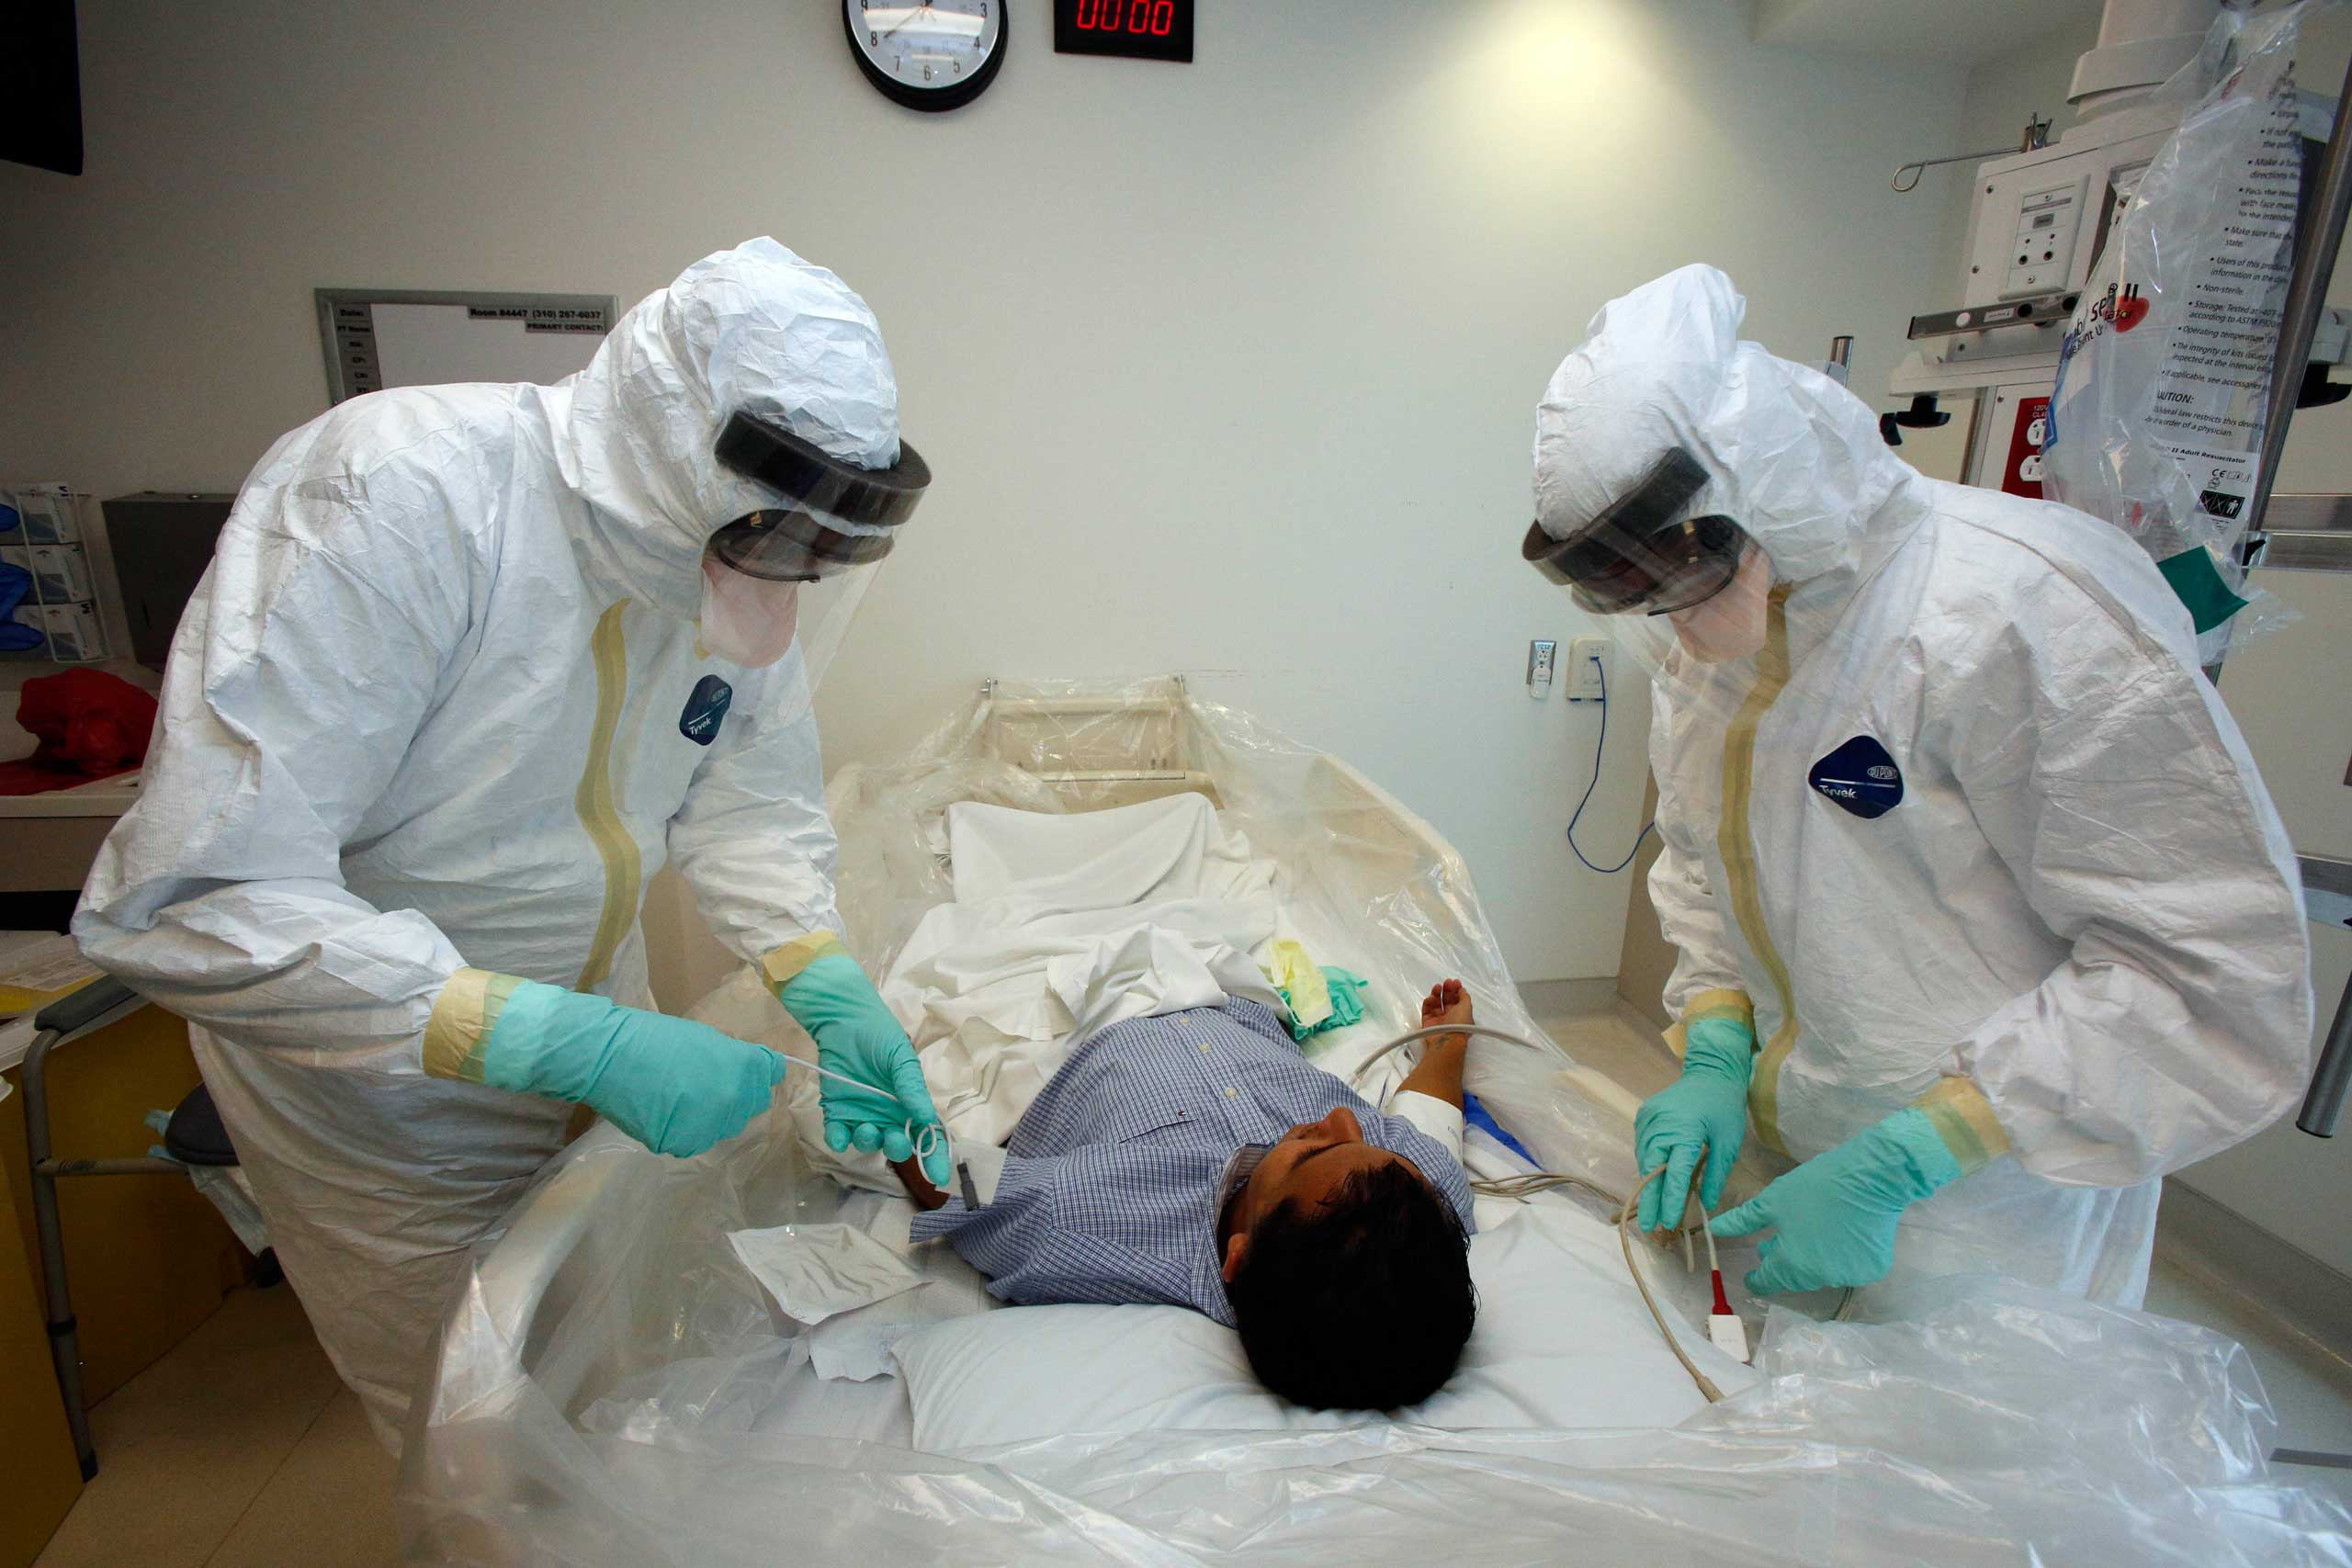 Doctors and staff participate in a preparadness exercise on diagnosing and treating patients with Ebola virus symptoms, at the Ronald Reagan UCLA Medical Center in Los Angeles.